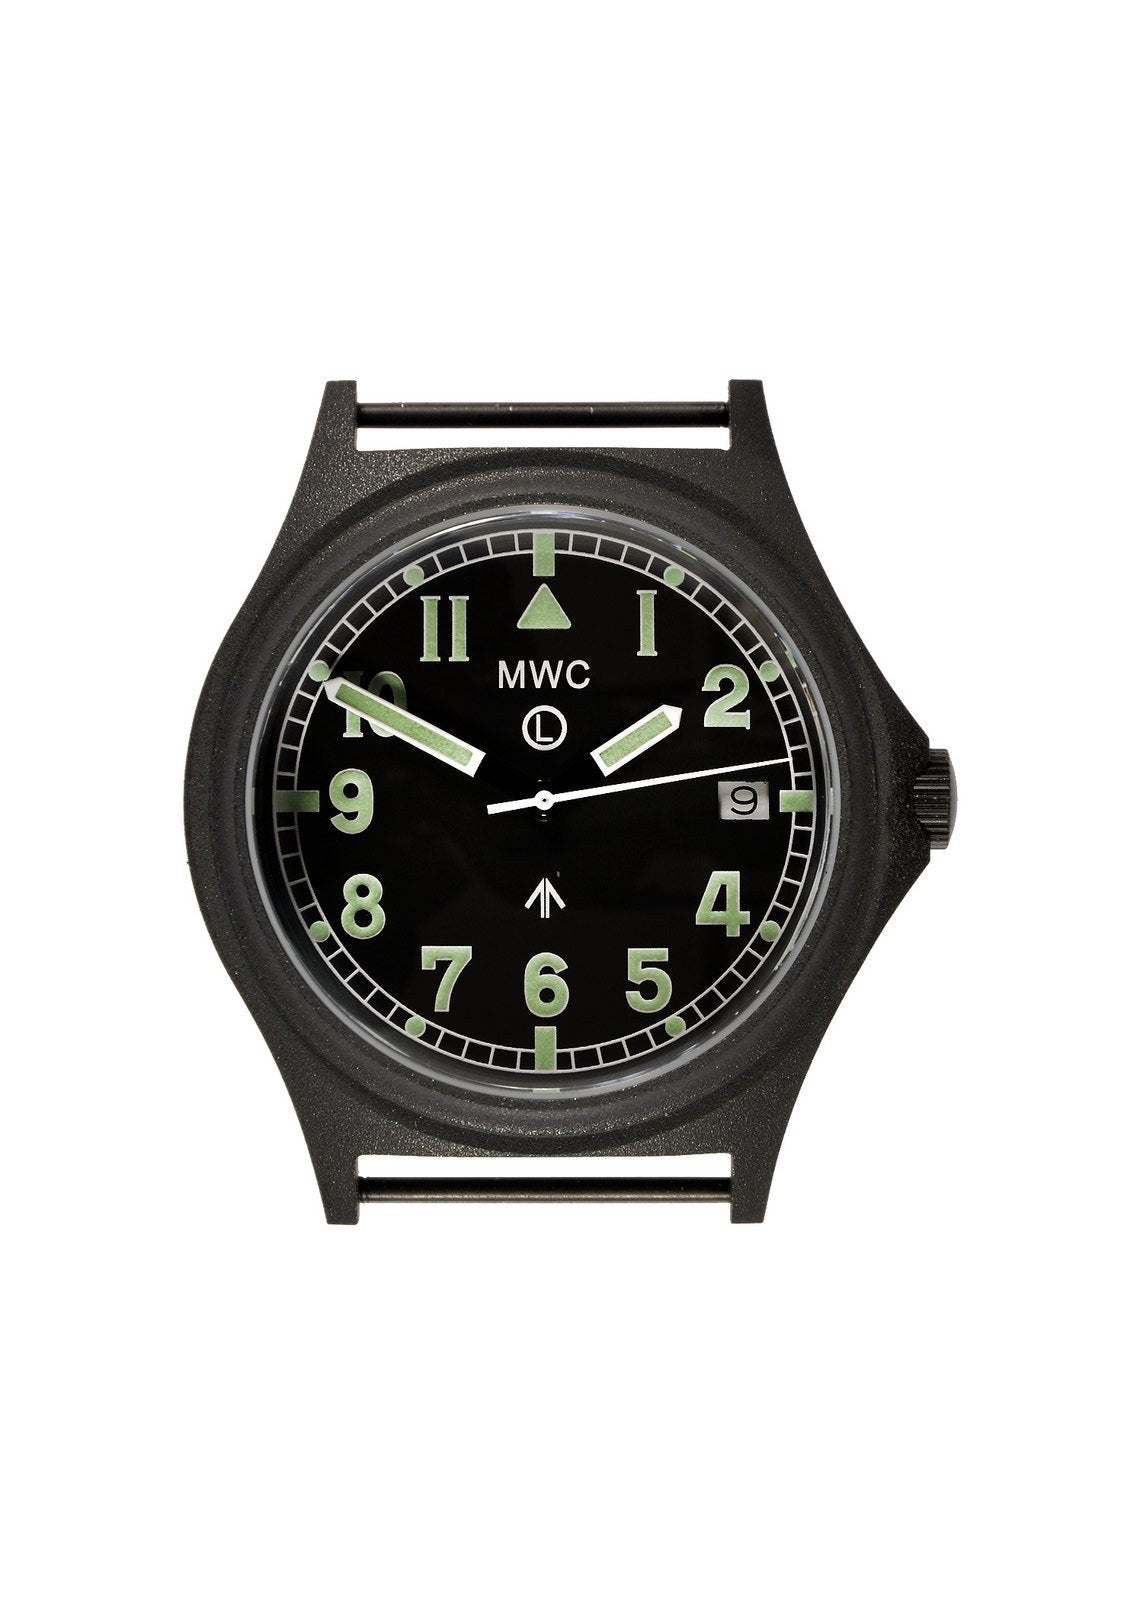 MWC G10 300m / 1000ft Water resistant Military Watch in PVD Steel Case with Sapphire Crystal (Dated) - Ex Display Watch